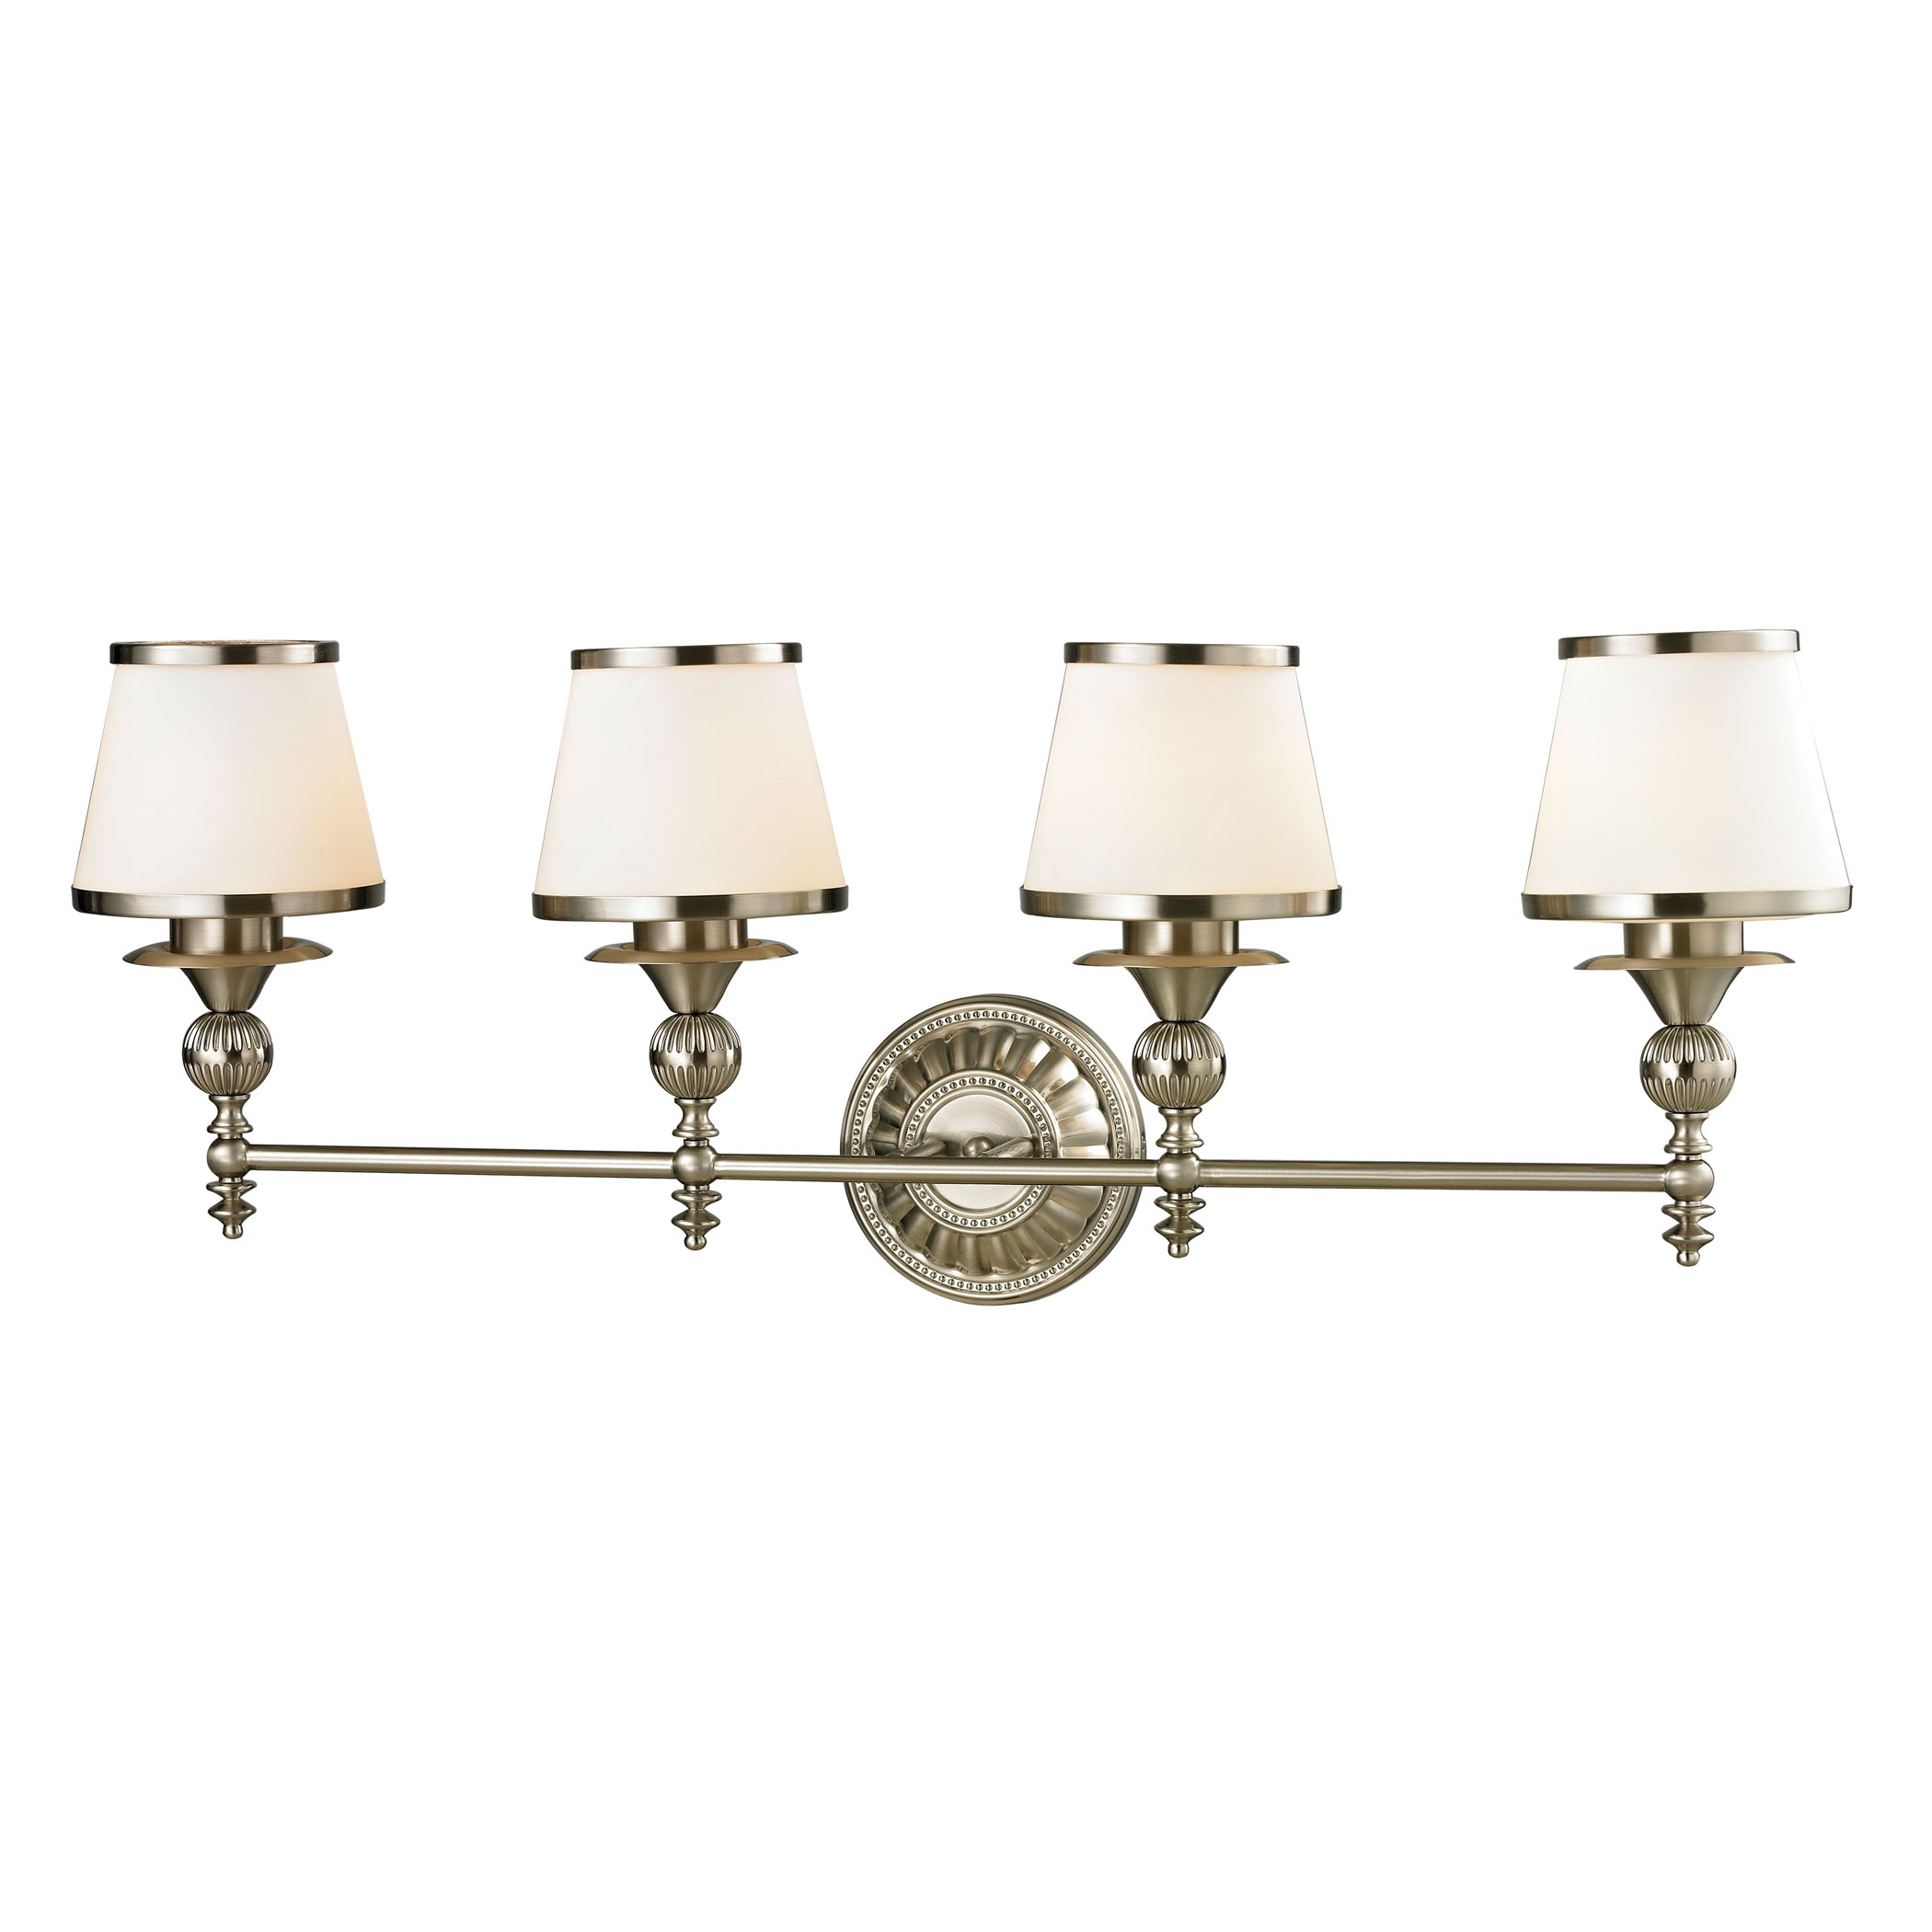 Smithfield Collection 4 Light Bath in Brushed Nickel